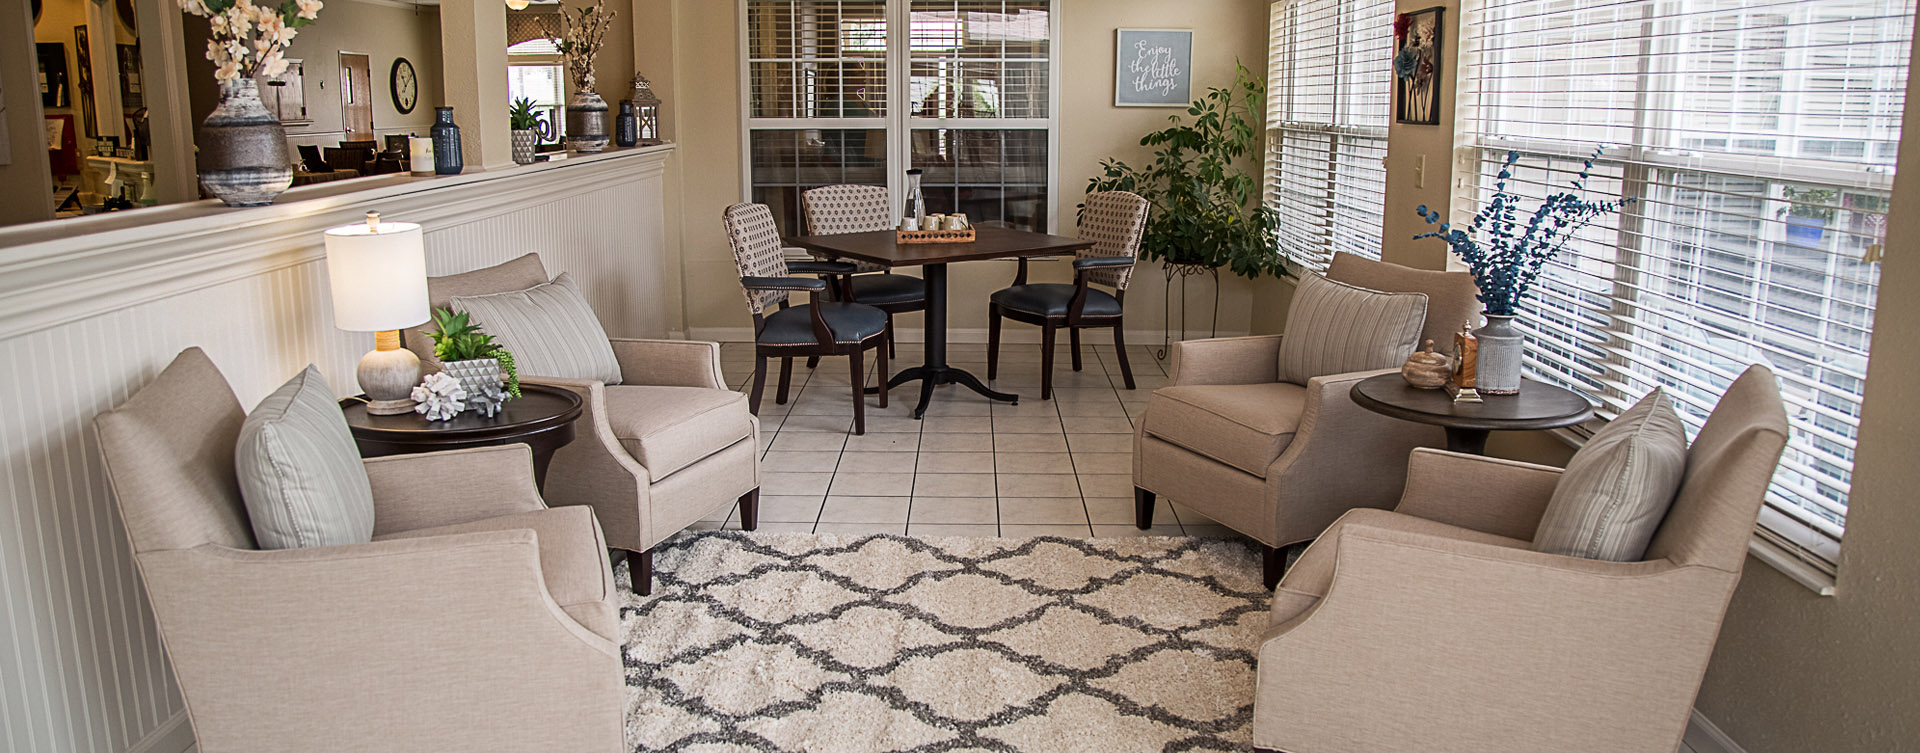 Relax in the warmth of the sunroom at Bickford of Davenport